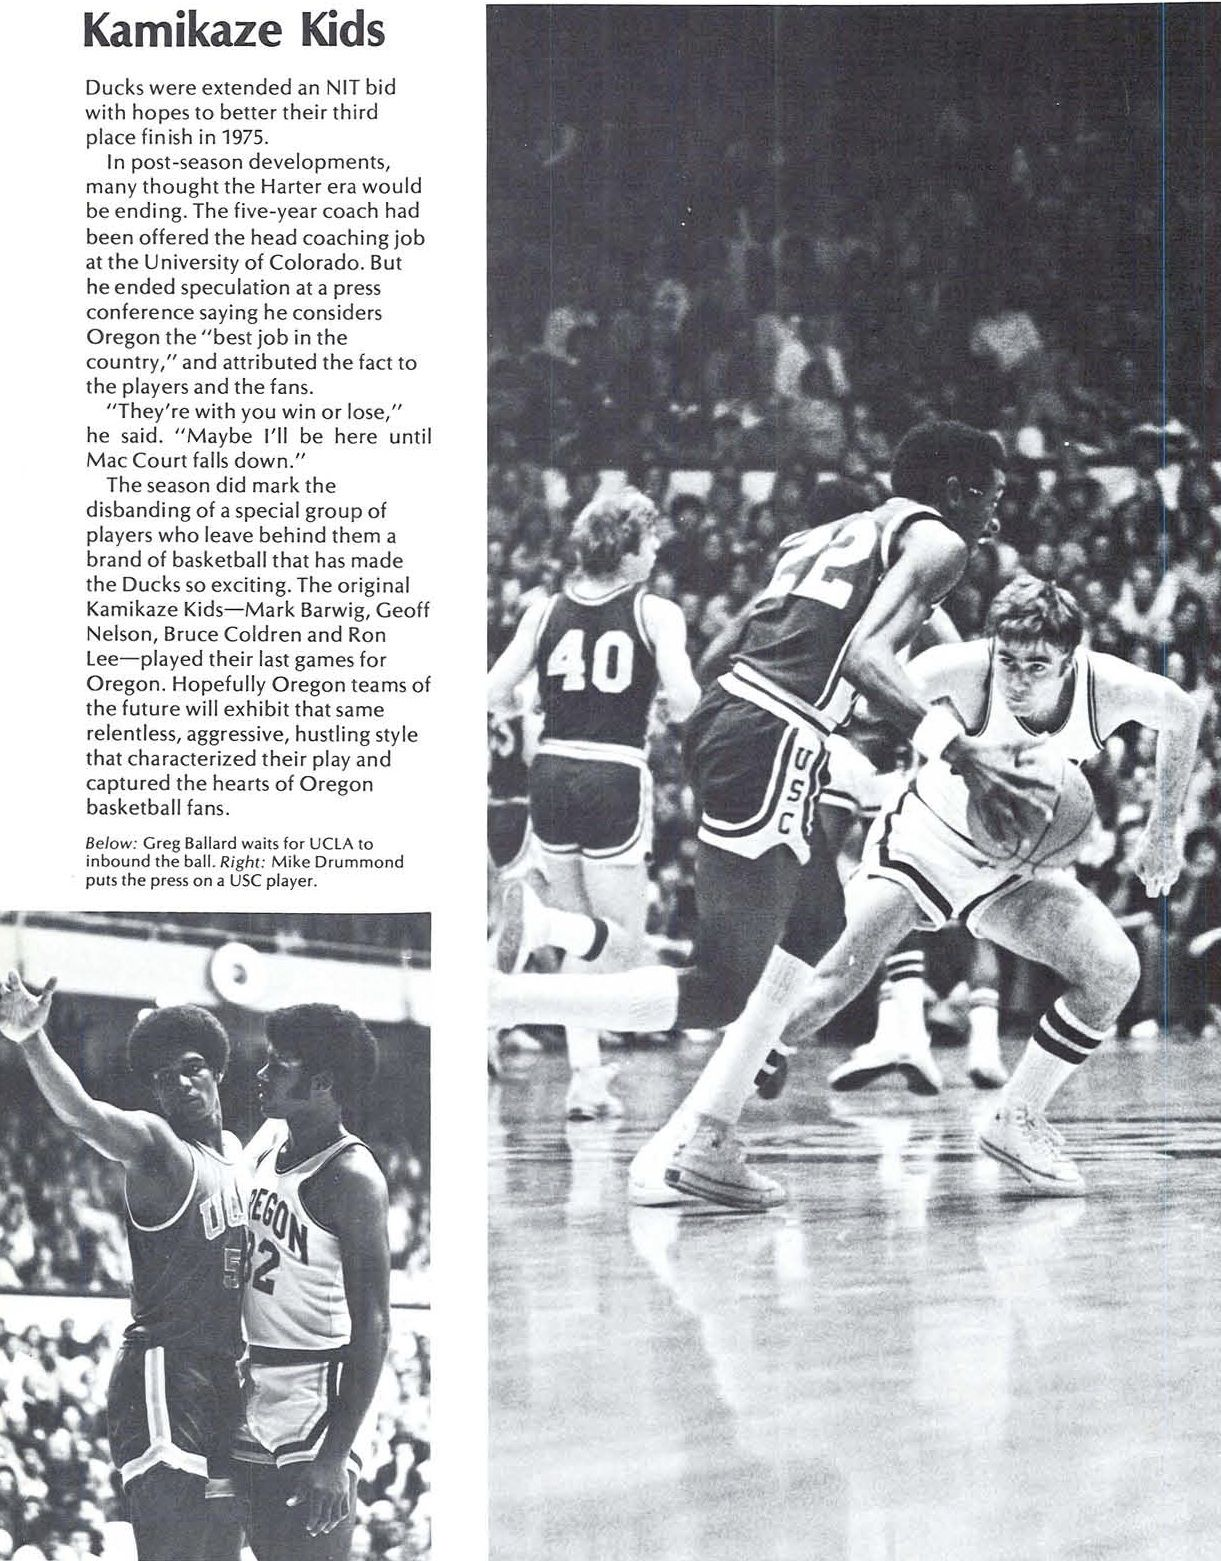 Oregon basketball 1975-76 review culminating in the NIT. From the 1976 Oregana (University of Oregon yearbook). www.CampusAttic.com